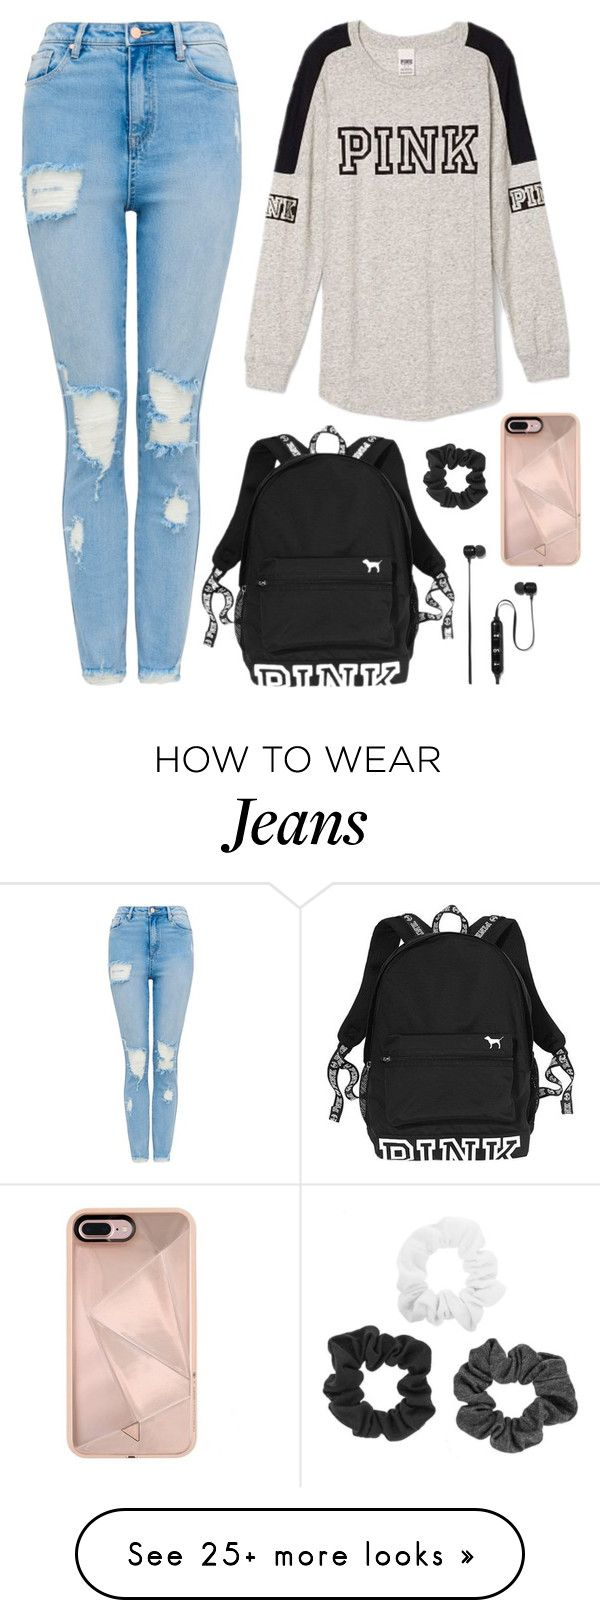 """i was wearing my ripped jeans and my pink shirt..."" by at-39thst-fashion on Polyvore featuring Victoria's Secret, Victoria's Secret PINK, Rebecca Minkoff, Polaroid and pinkvs"